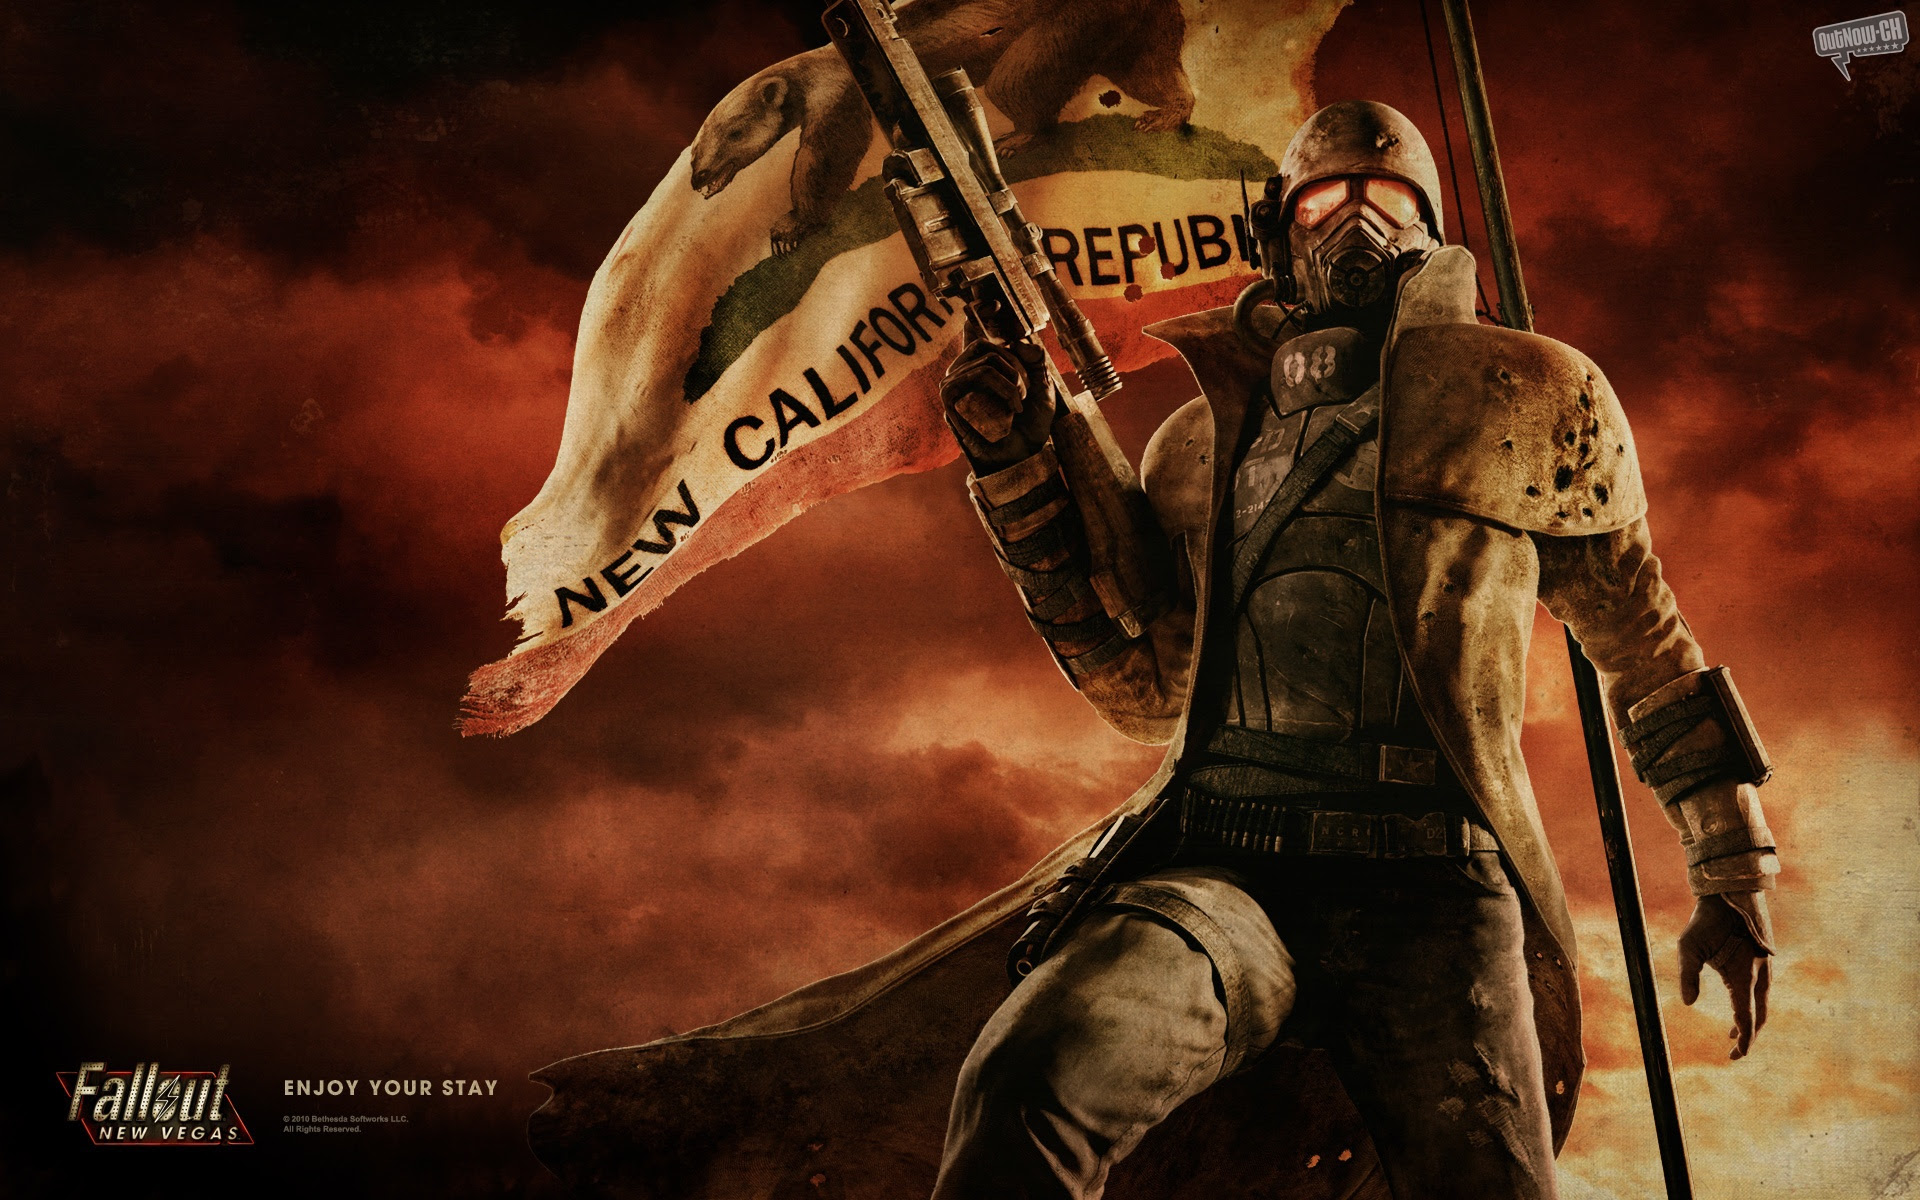 1920x1200 Fallout New Vegas Desktop Pc And Mac Wallpaper